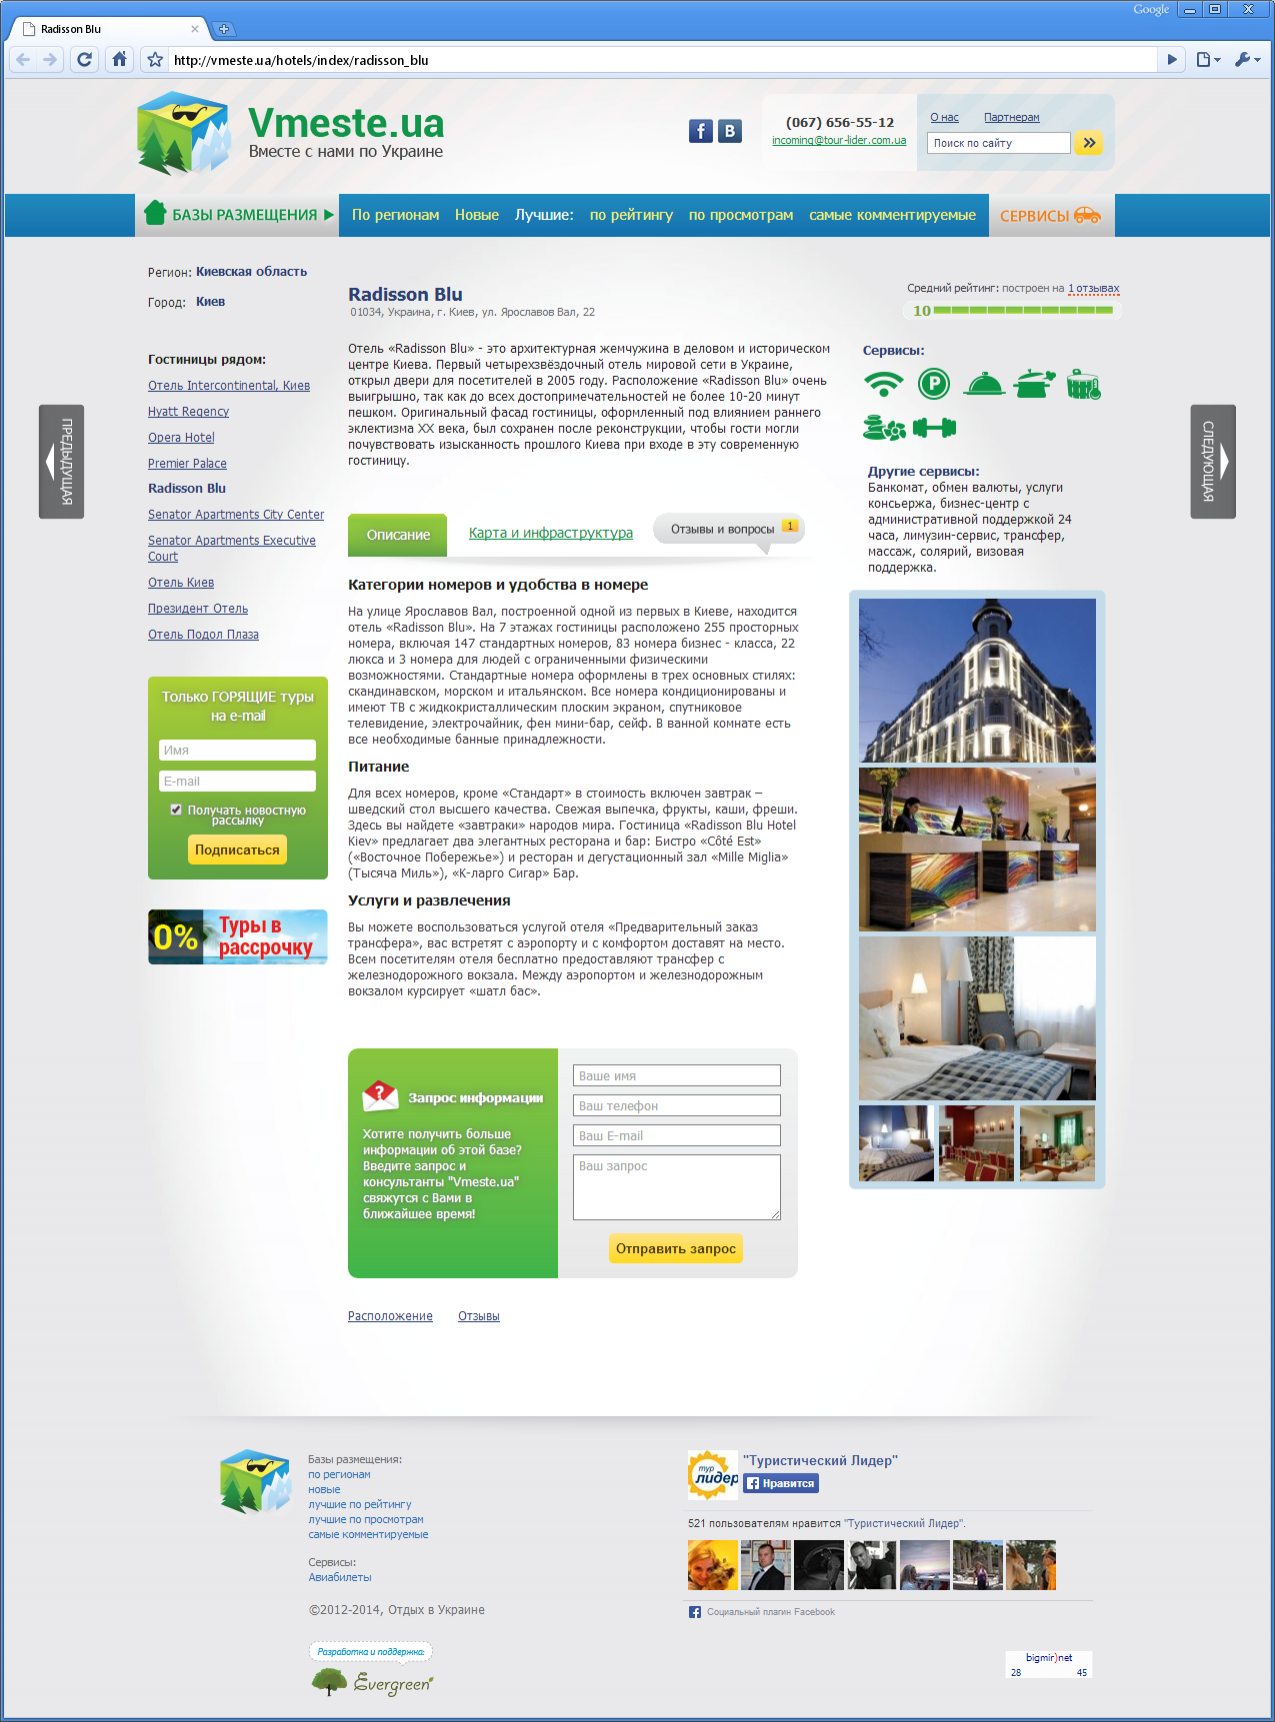 Vmeste.ua conceived as a portal where you can find and see any hotel in Ukraine, and order a number of services, from booking accommodation to tours in different regions of Ukraine. | Evergreen projects | Evergreen projects 5